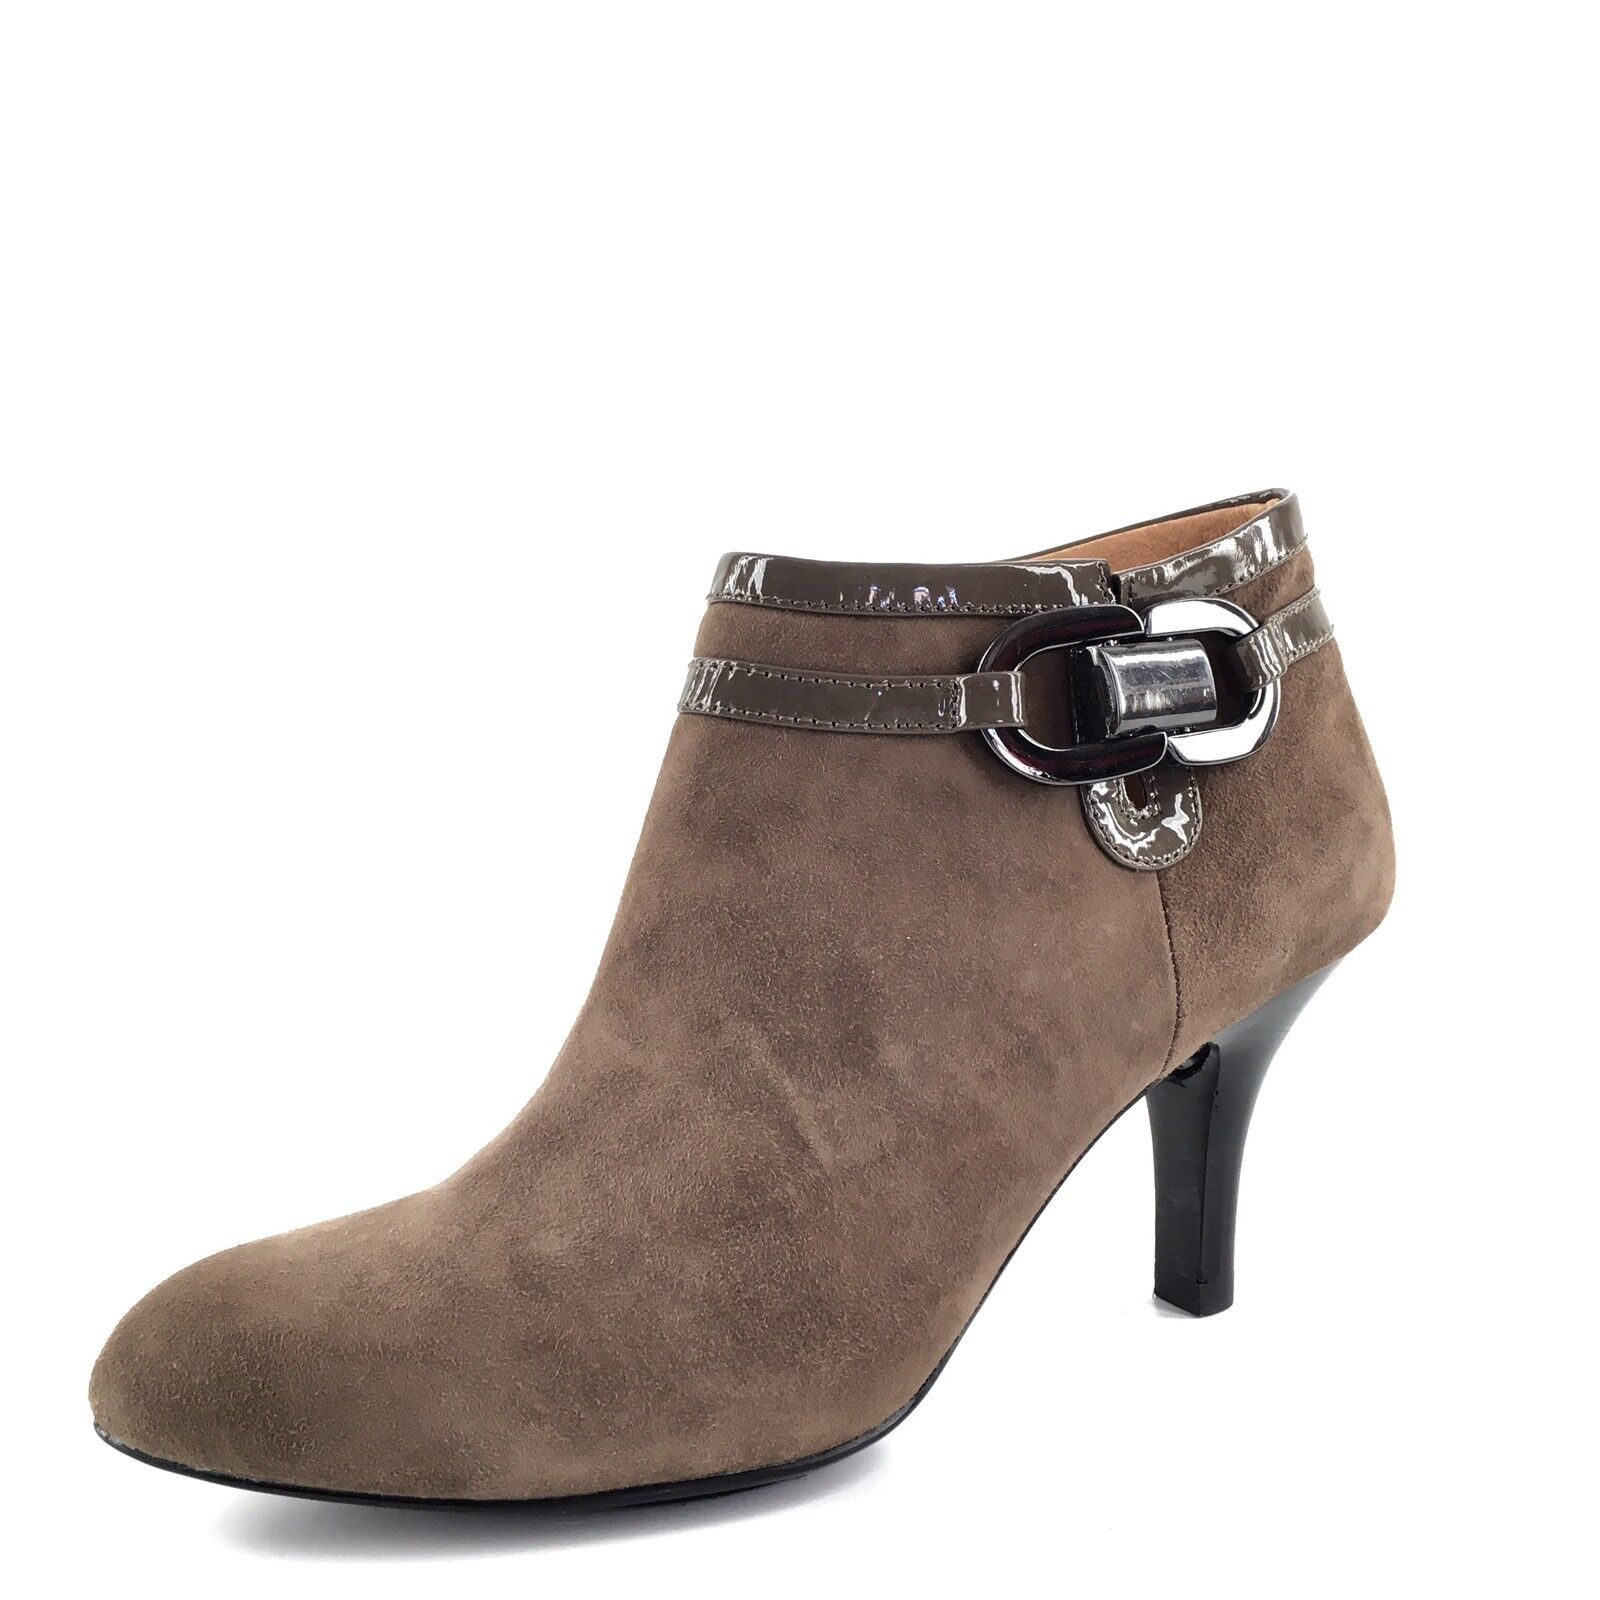 New SOFFT Belvedere Brown Suede Zip Ankle Boots Women's Size 6 M